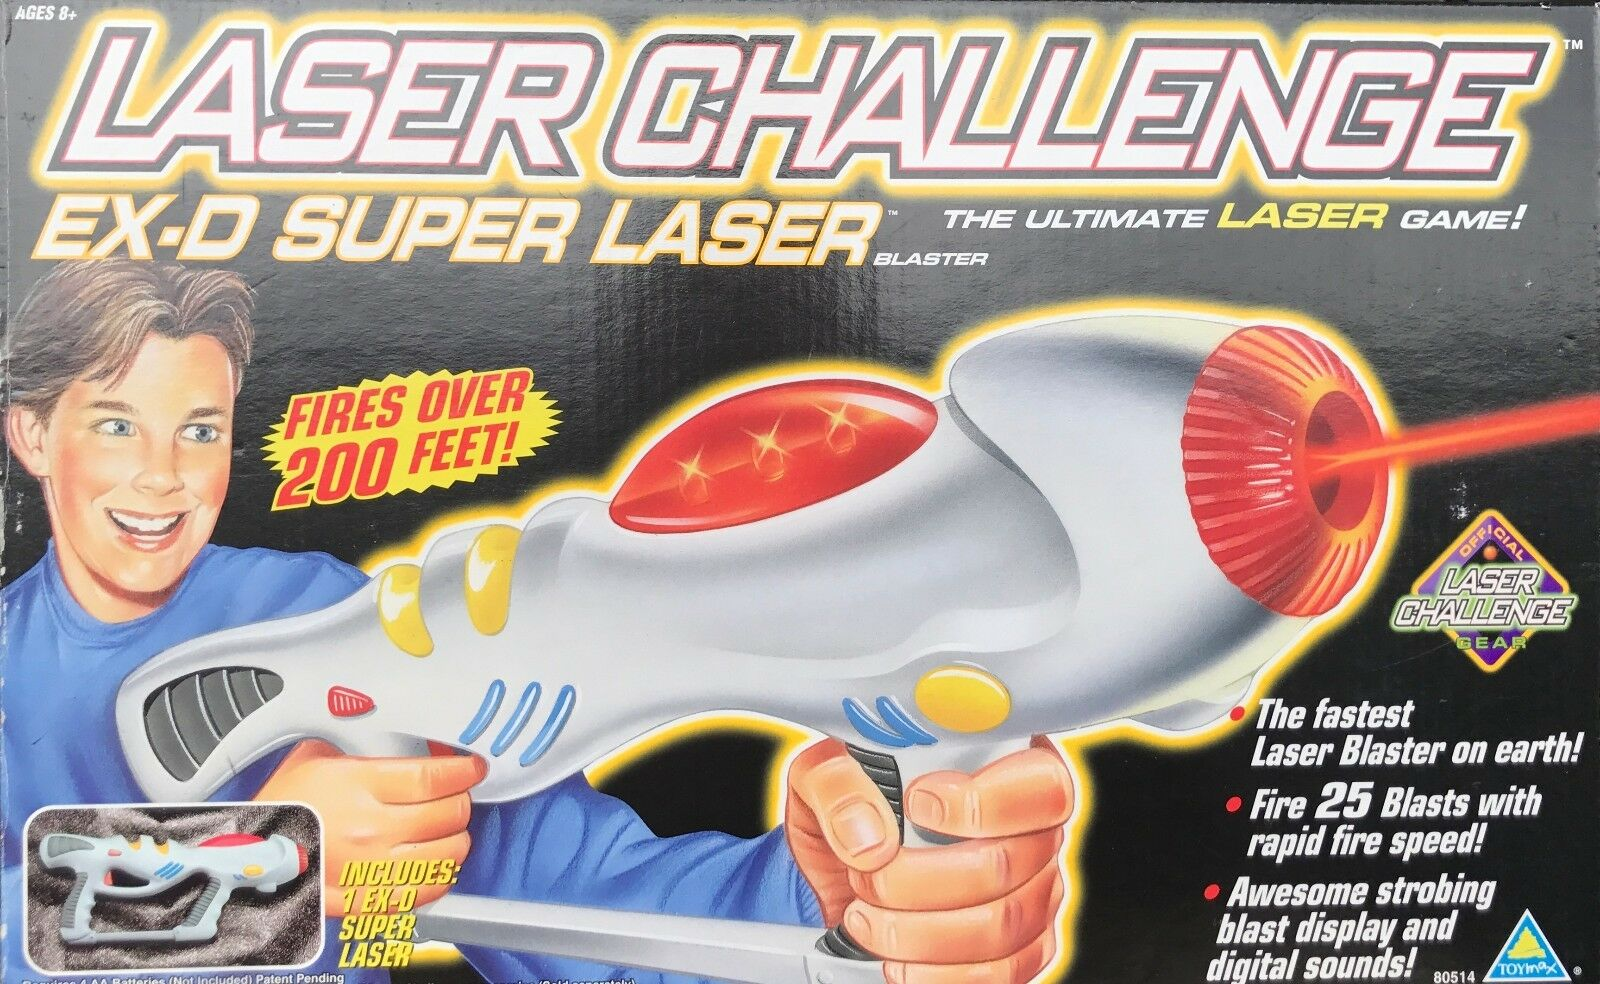 Laser Challenge Team Force Ex-D Rifle Gun - New